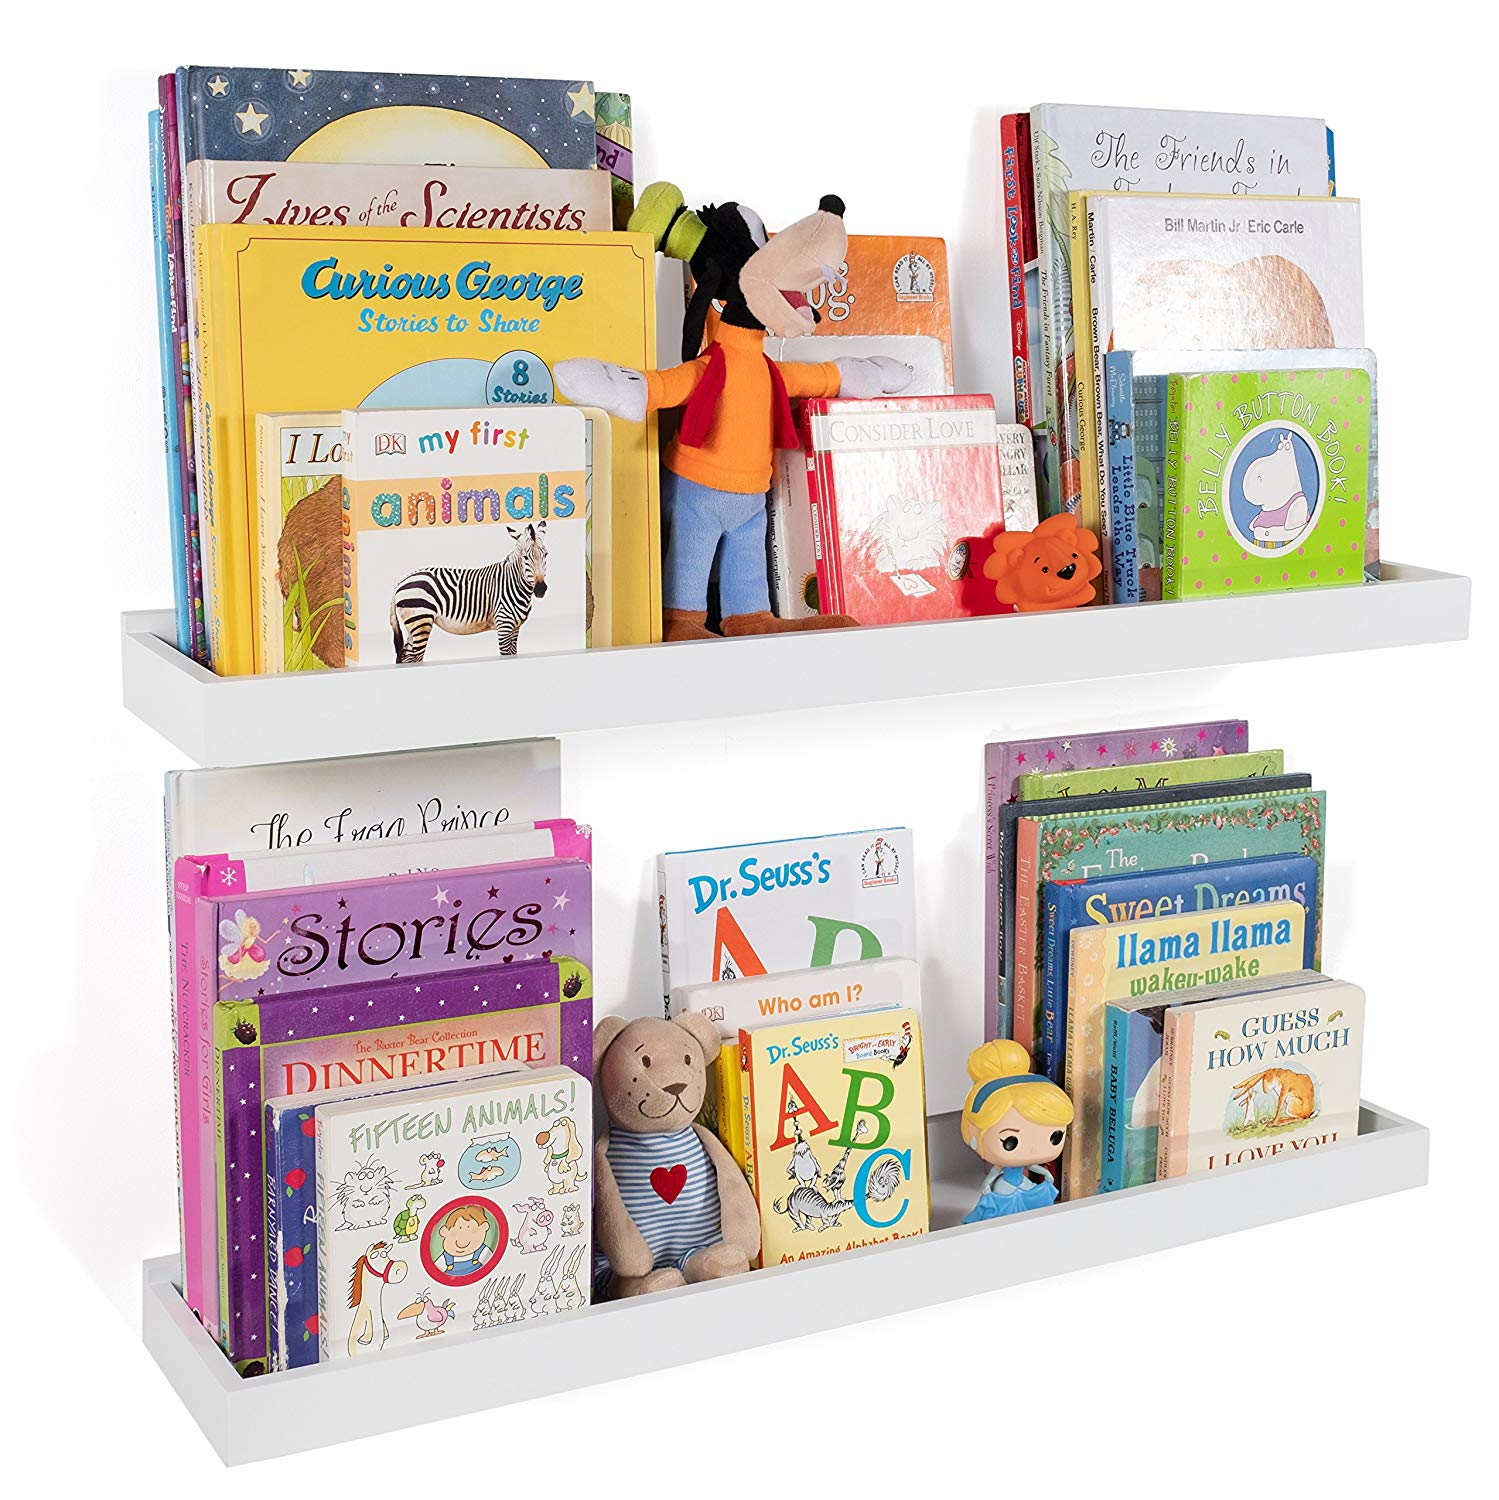 wallniture philly nursery bookshelf floating book bookshelves shelves for kids room inch ture ledge tray toy storage display white set adhesive curtain rod small corner bakers